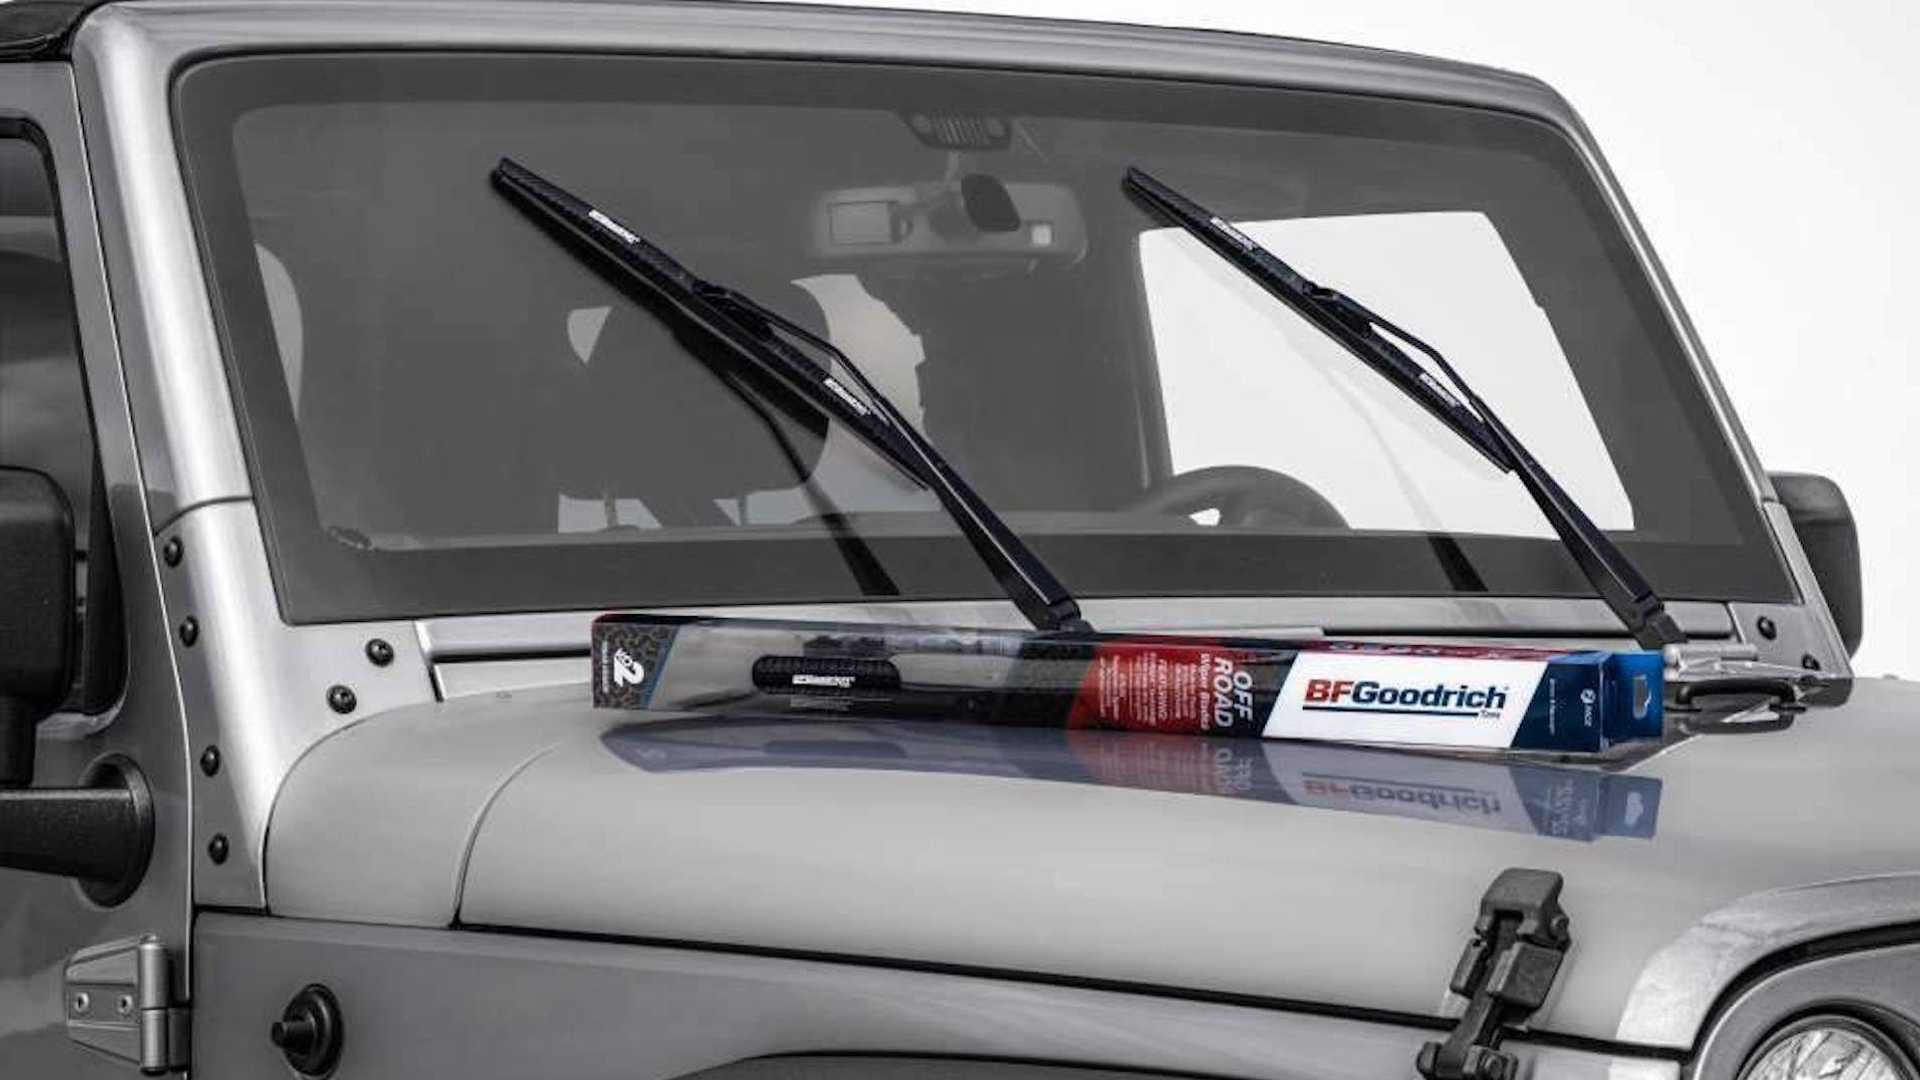 BFGoodrich Develops Wipers For Off-Road, But Are They Really Necessary?